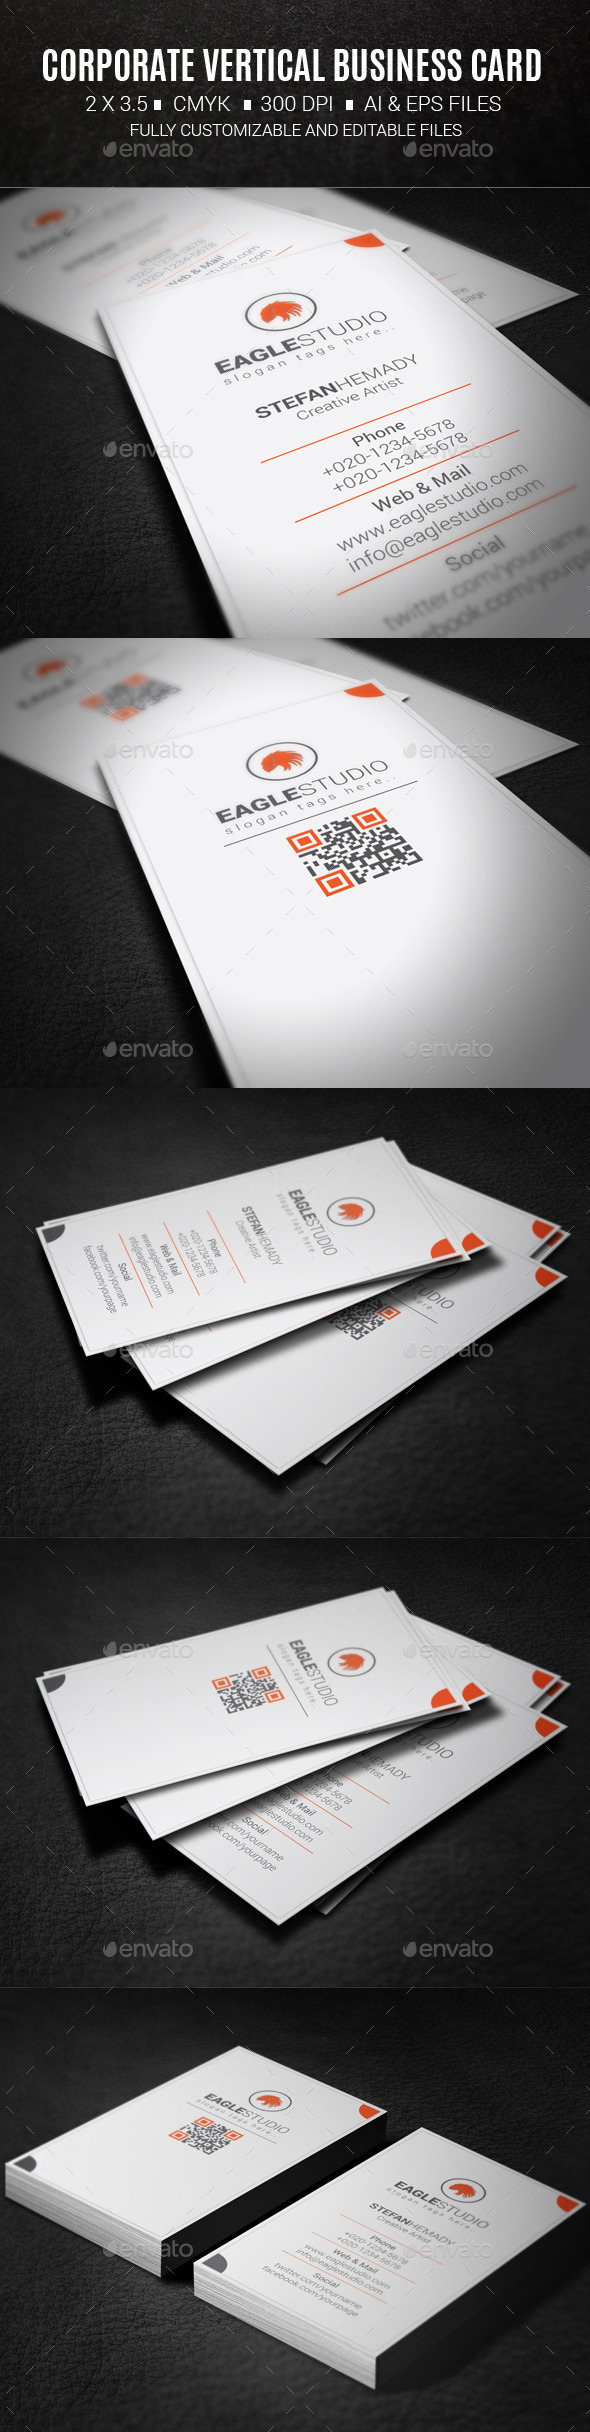 GraphicRiver Corporate Vertical Business Card 10418861